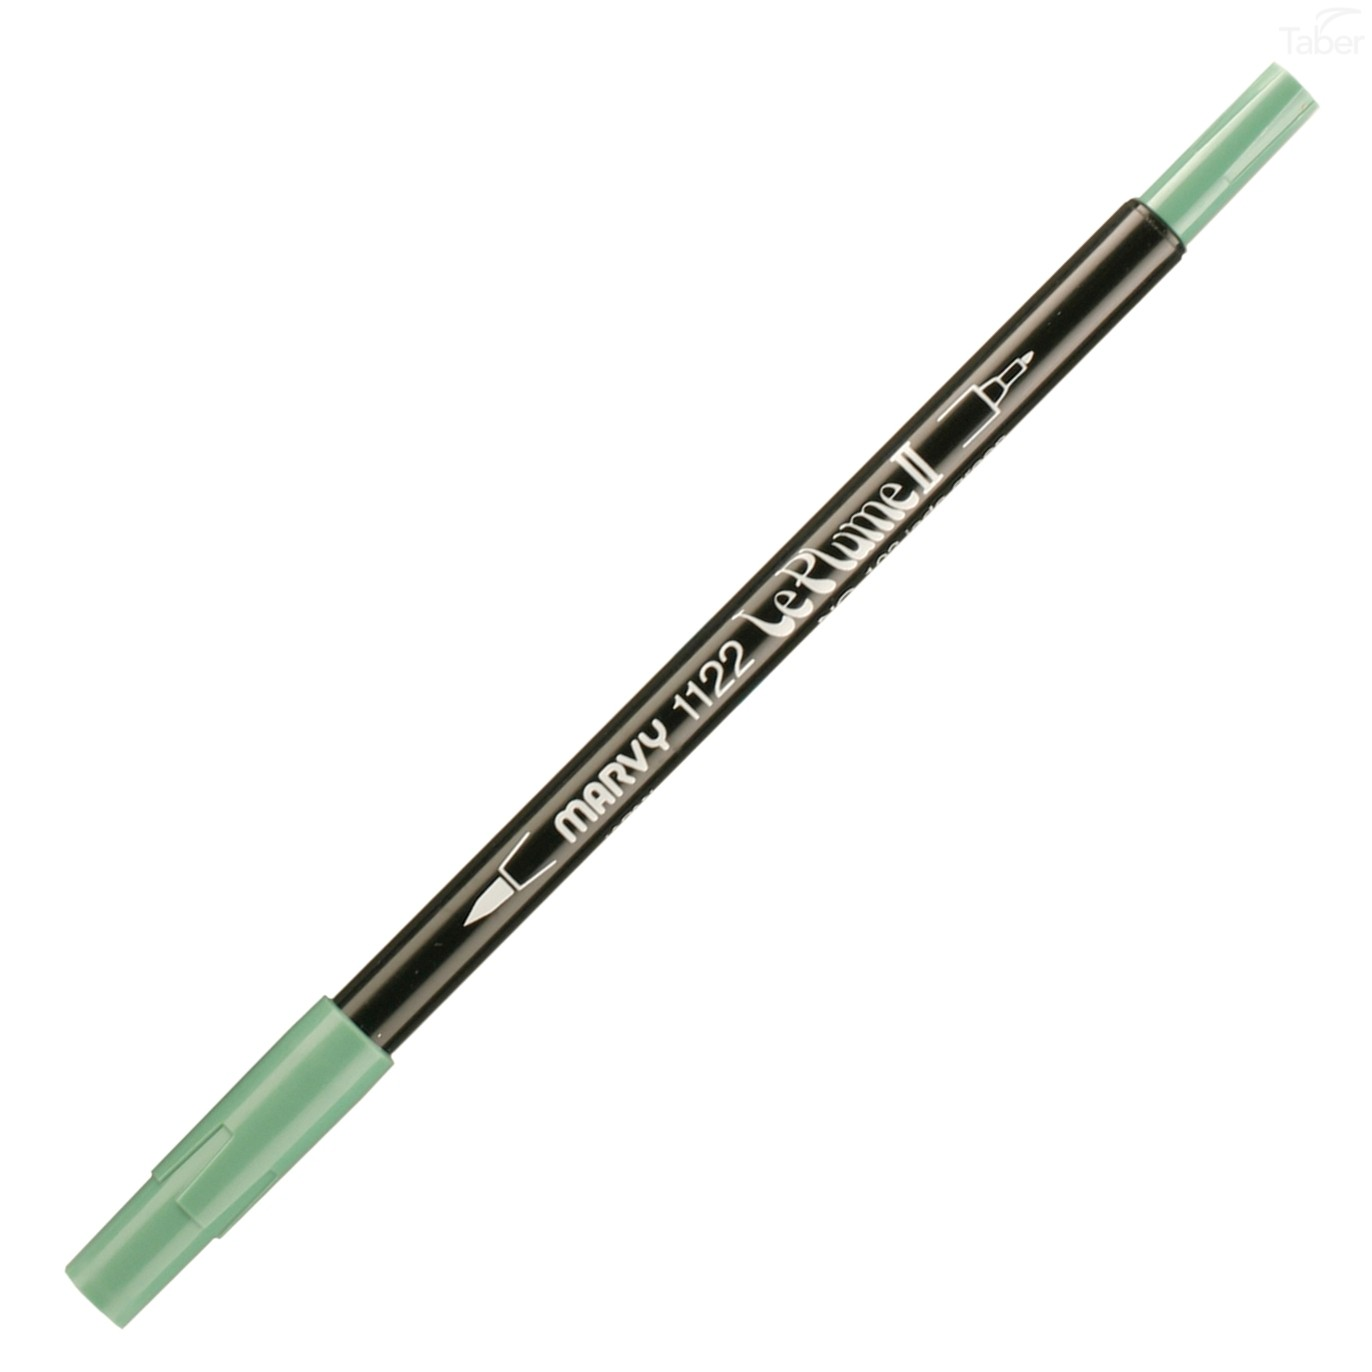 Marvy Le Plume II Double Ended Watercolor Marker, Jade Green